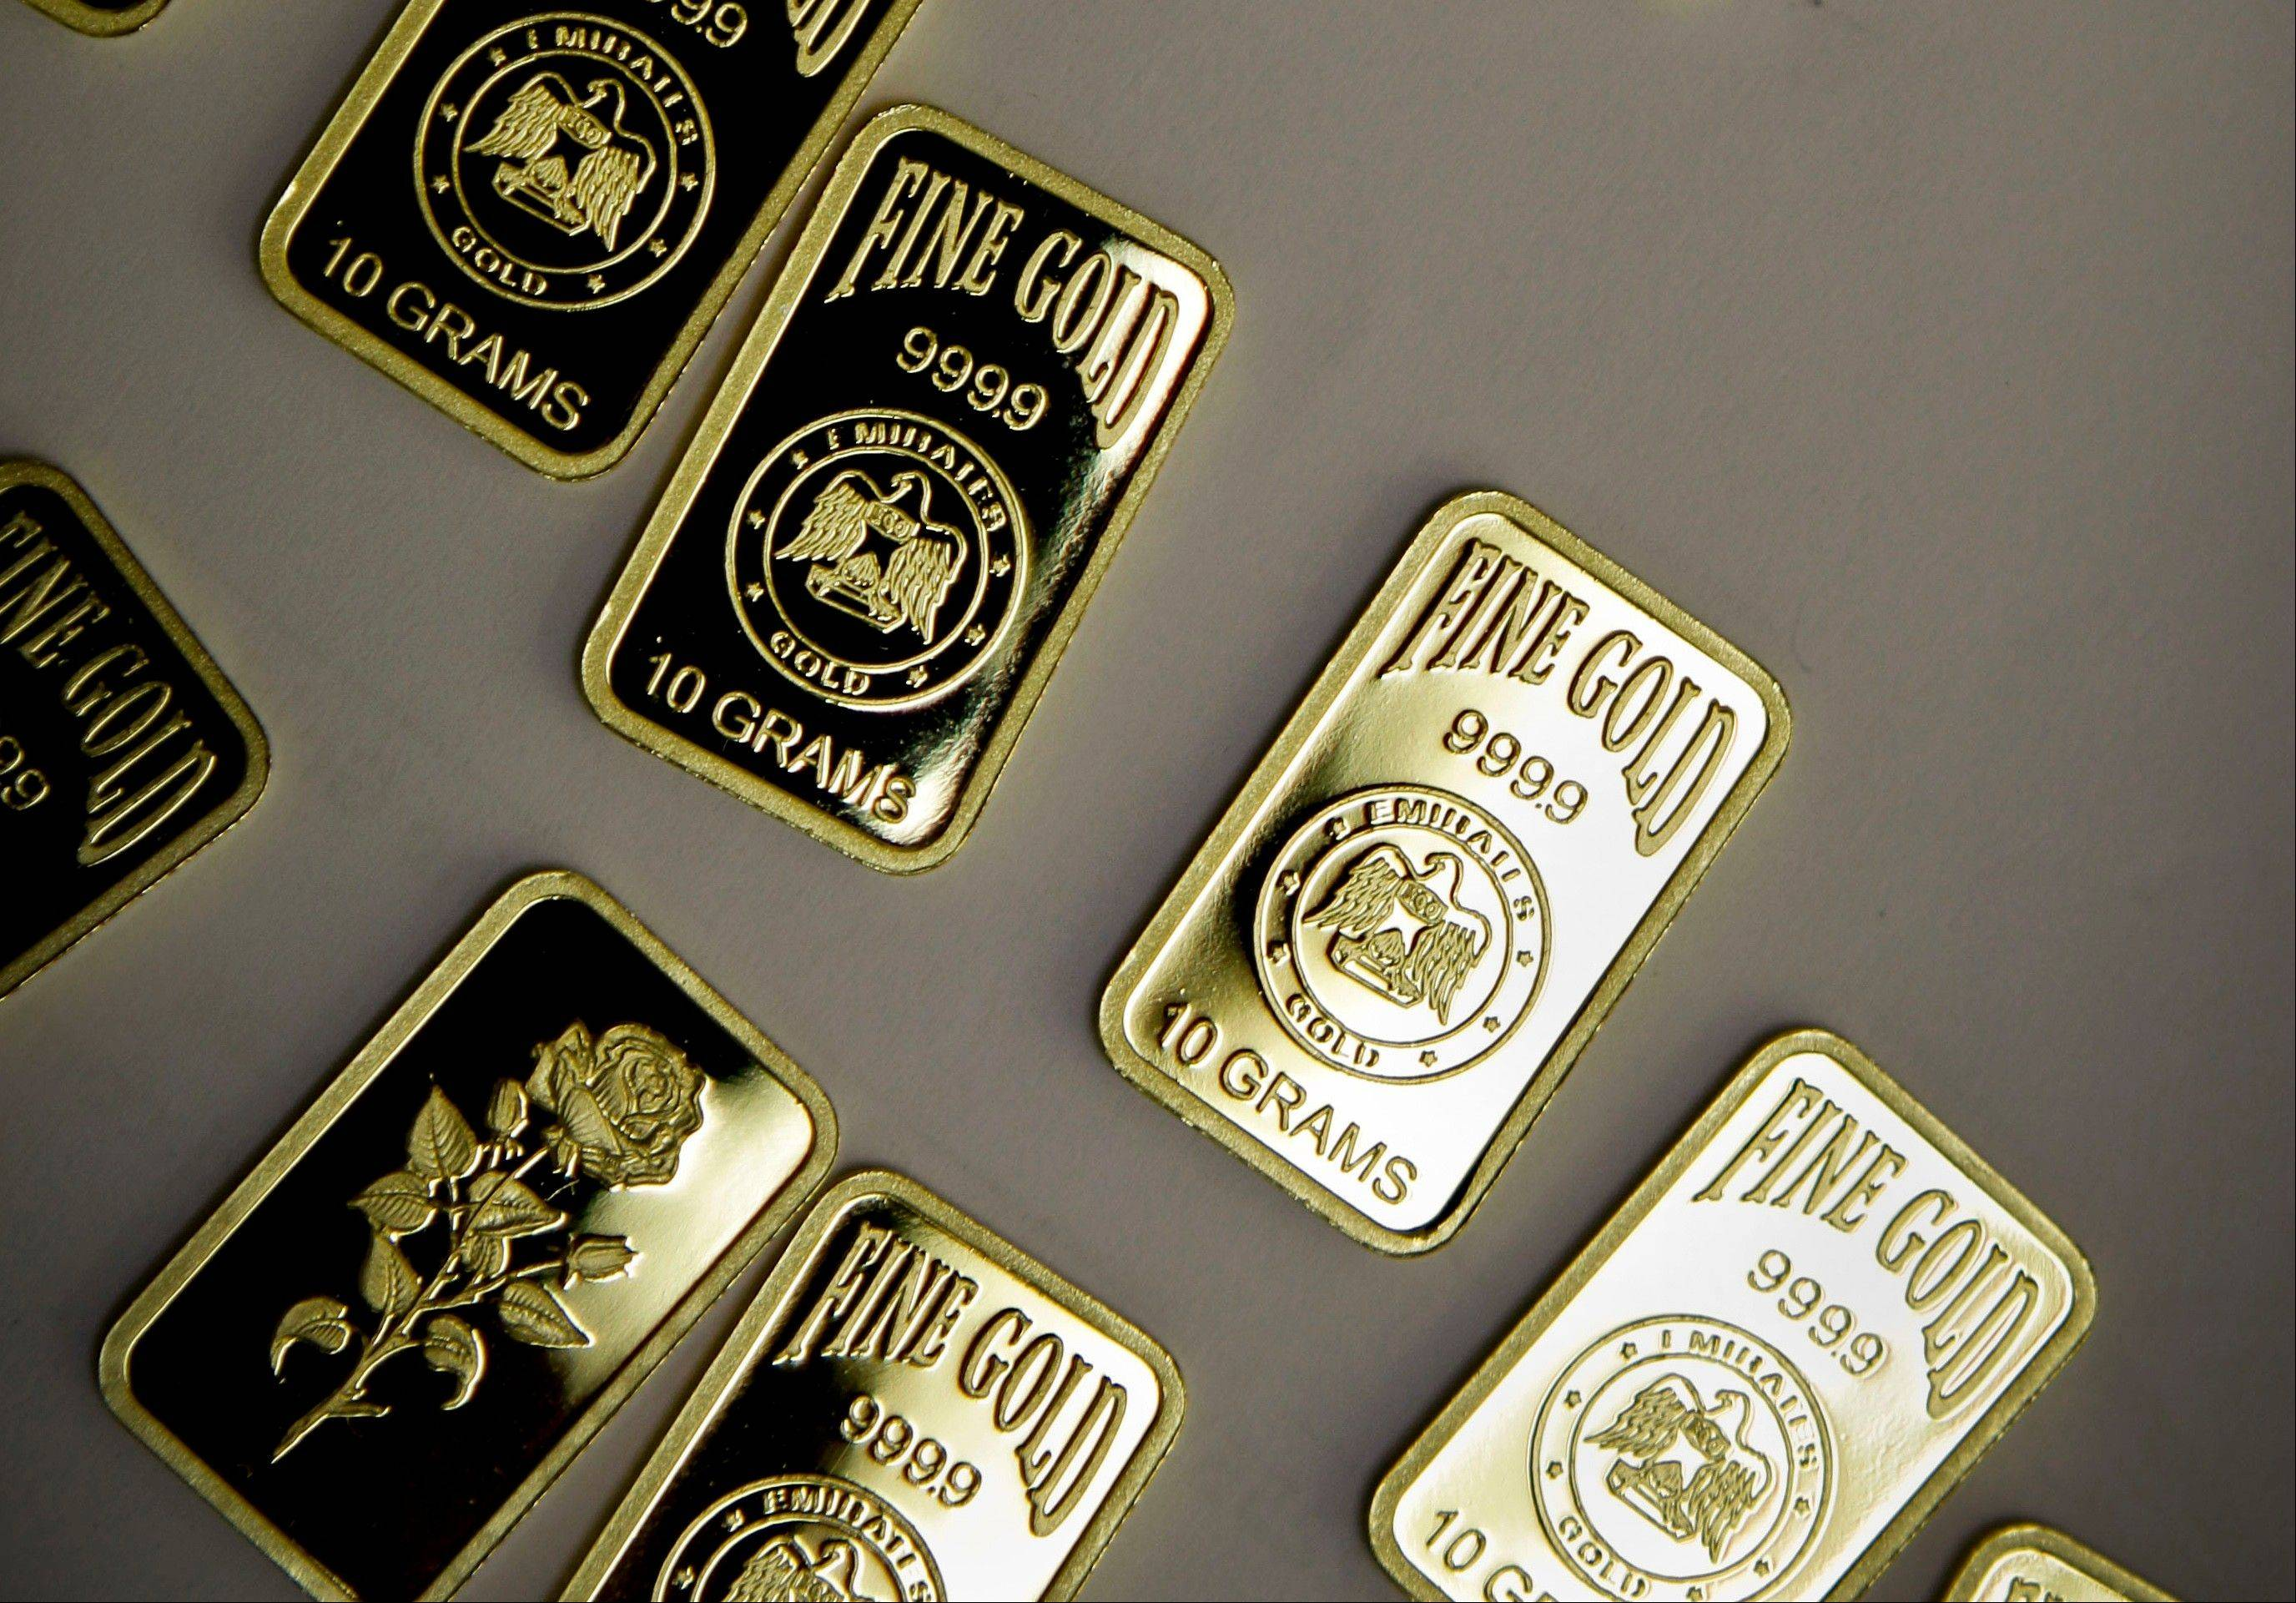 Gold, considered a safe haven investment, was hit hard in 2013, while stocks soared. The price gained steadily for more than a decade, driven by concerns about the health of the economy. Then the metal plunged in 2013 amid signs that the U.S. economy was maintaining its recovery.